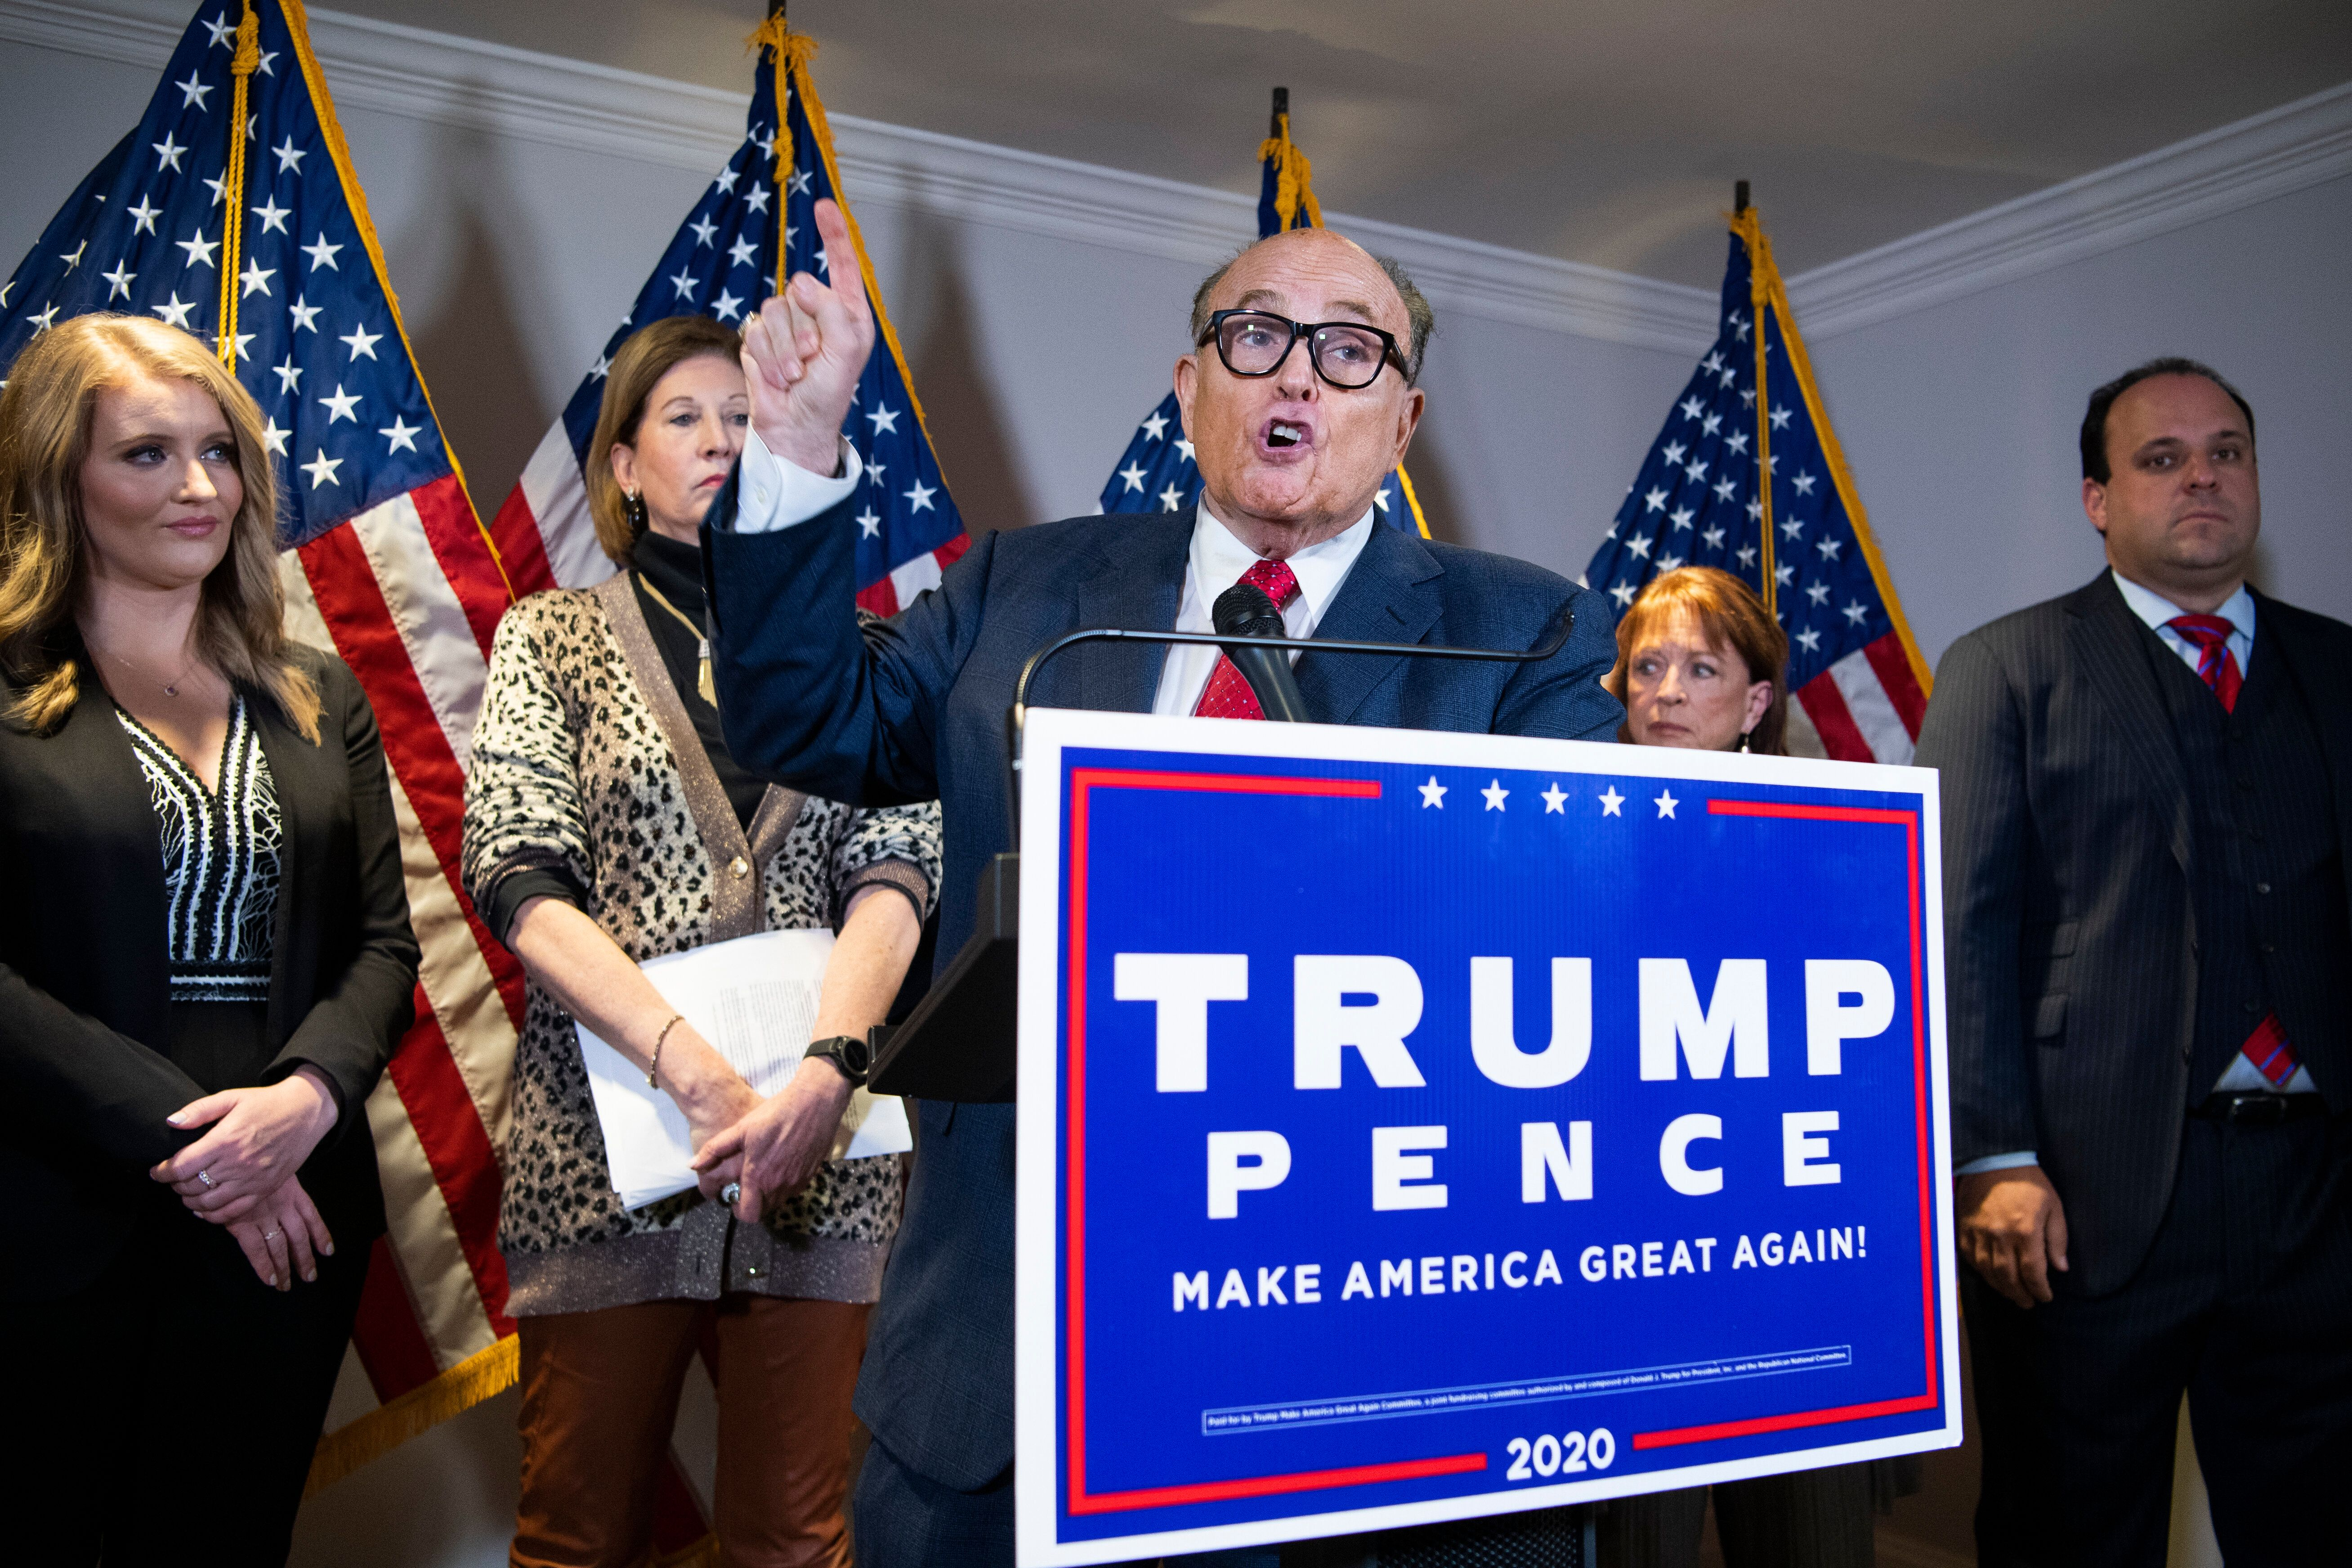 Rudy Giuliani, personal attorney for President Donald Trump, held a news conference at the Republican National Committee on T